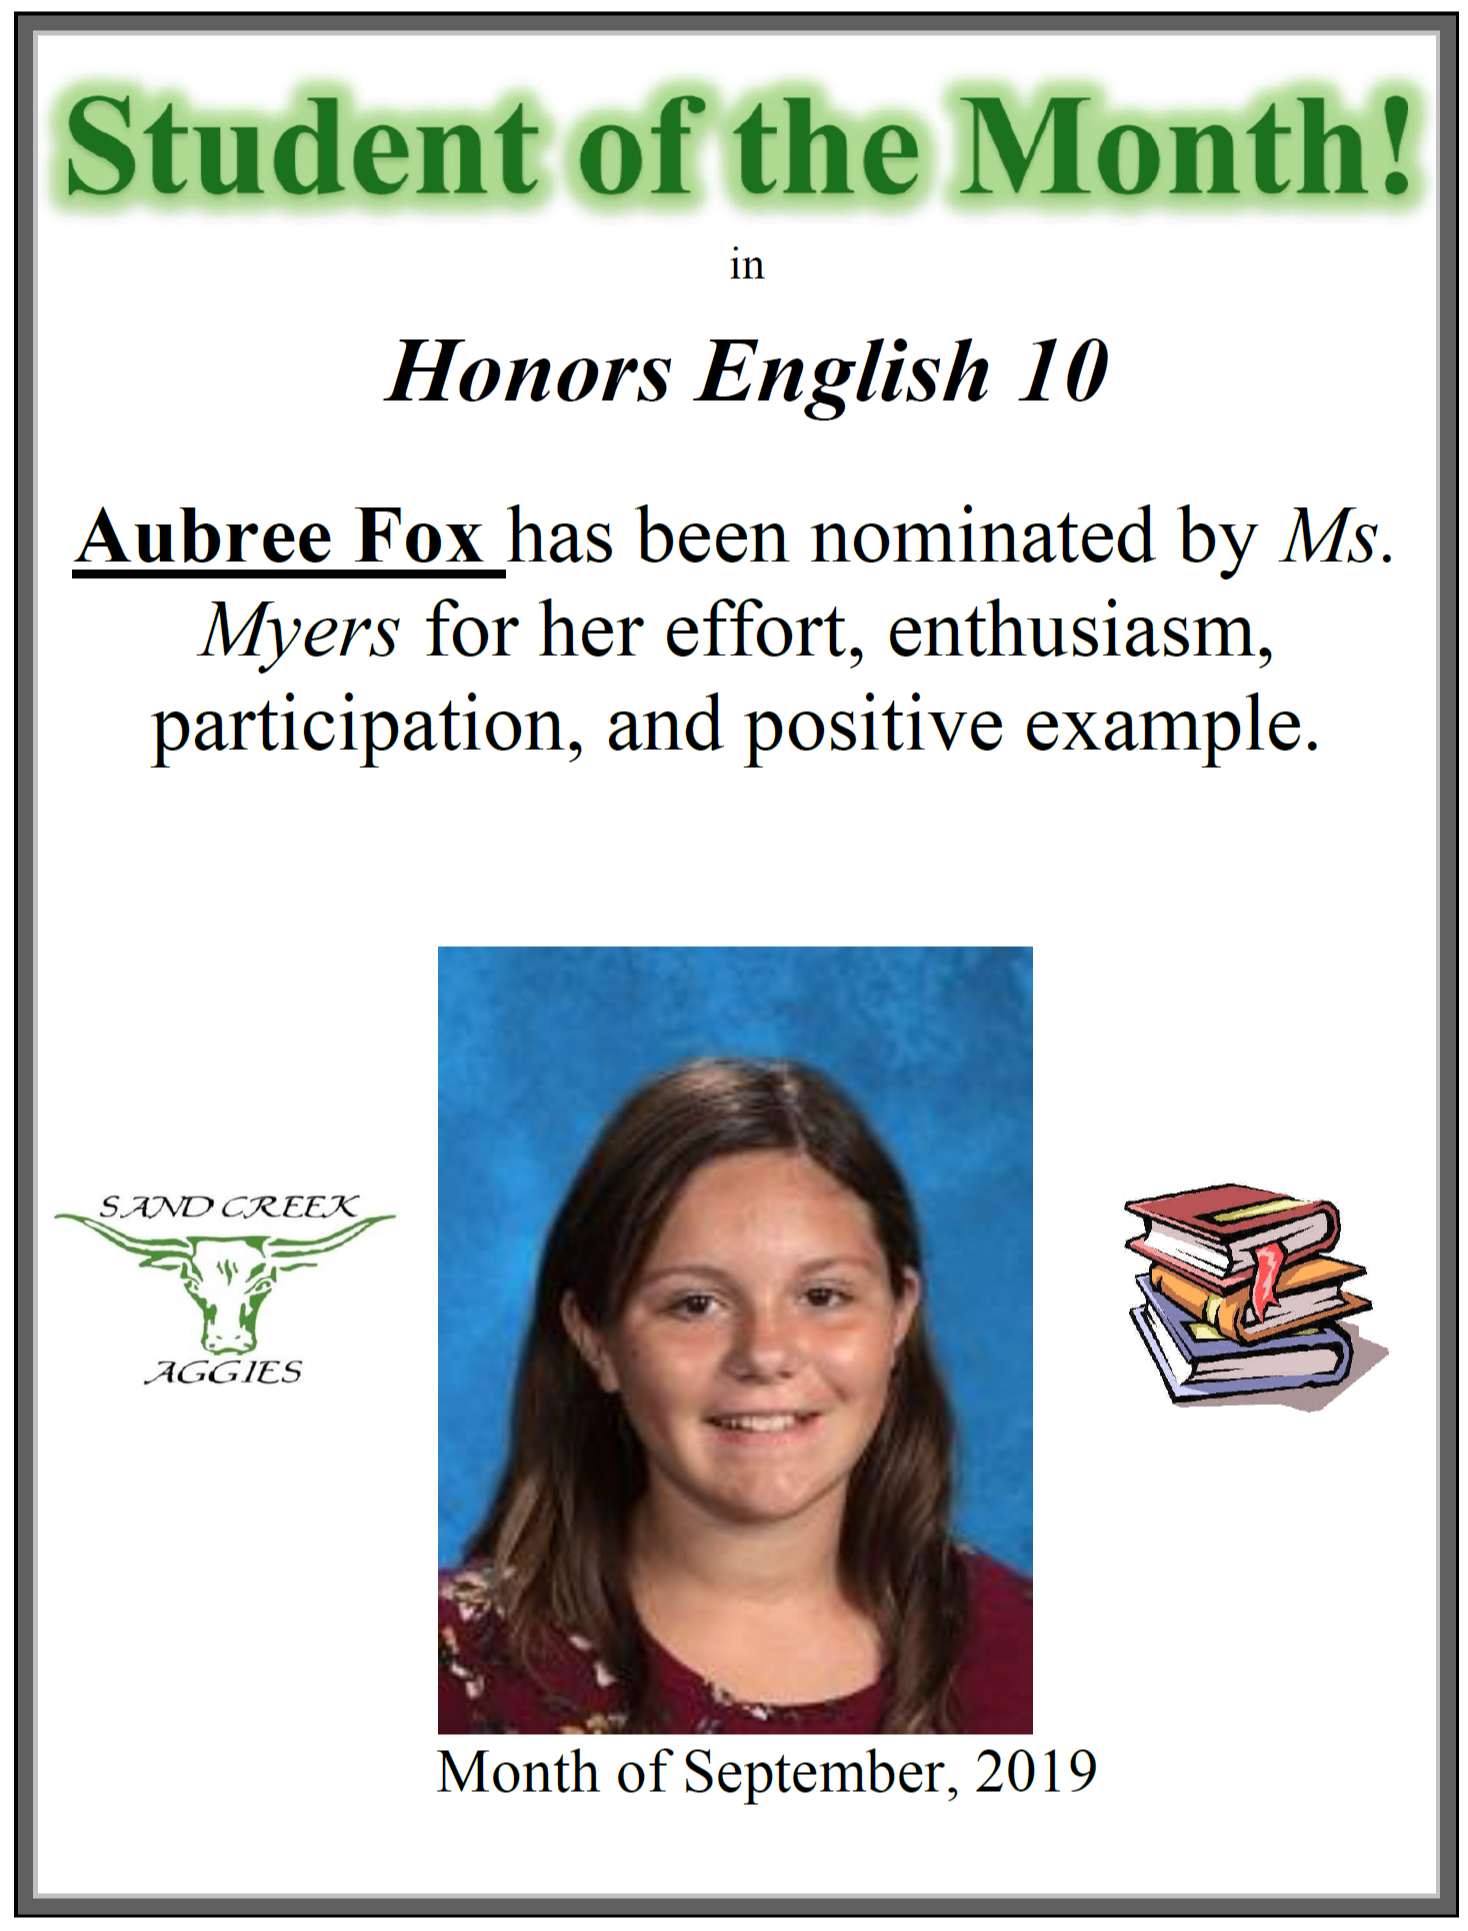 Student of the Month for September 2019